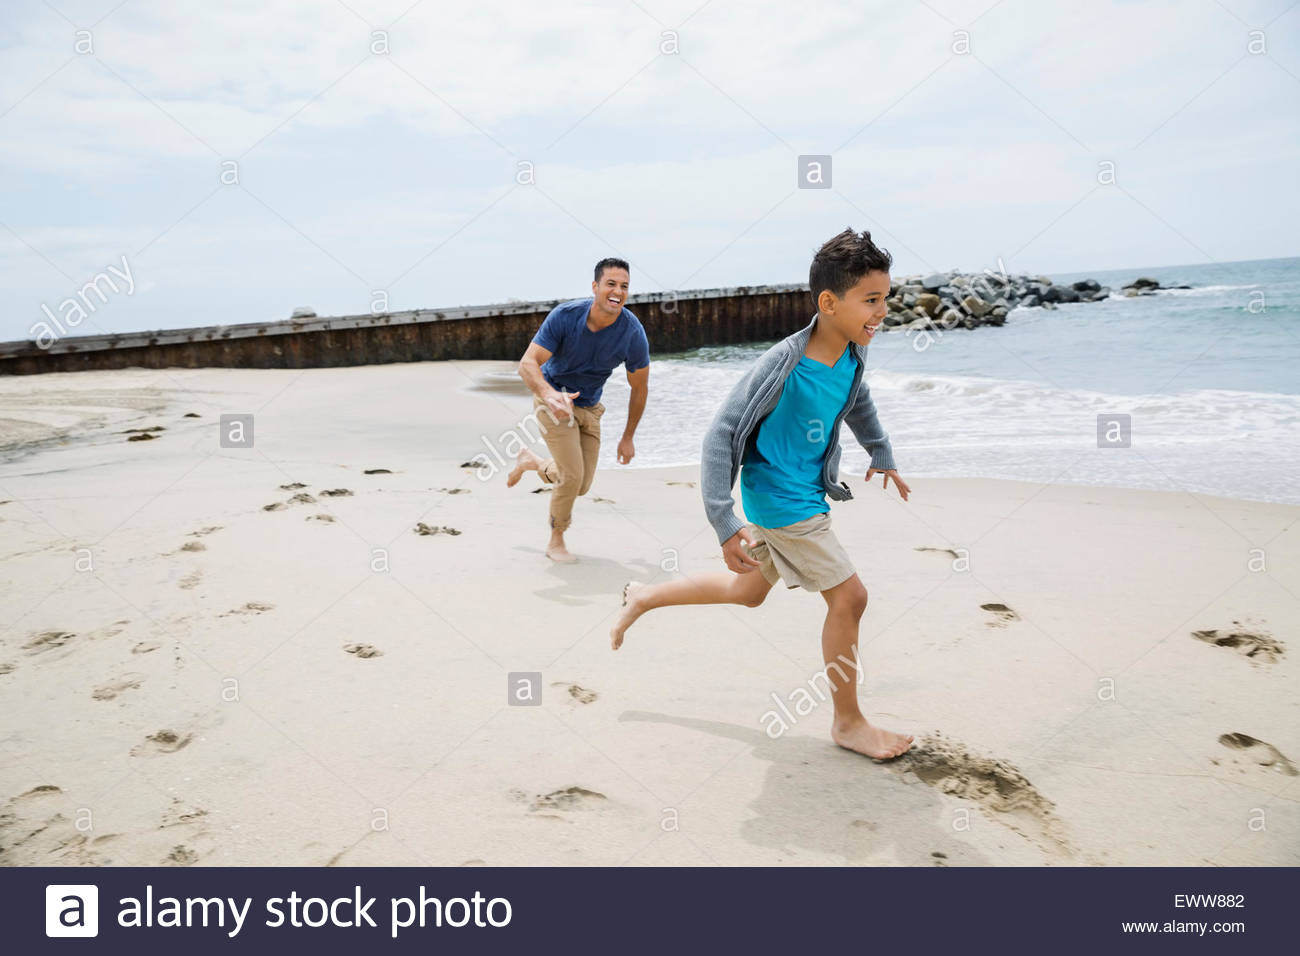 Father running and chasing son on sunny beach - Stock Image